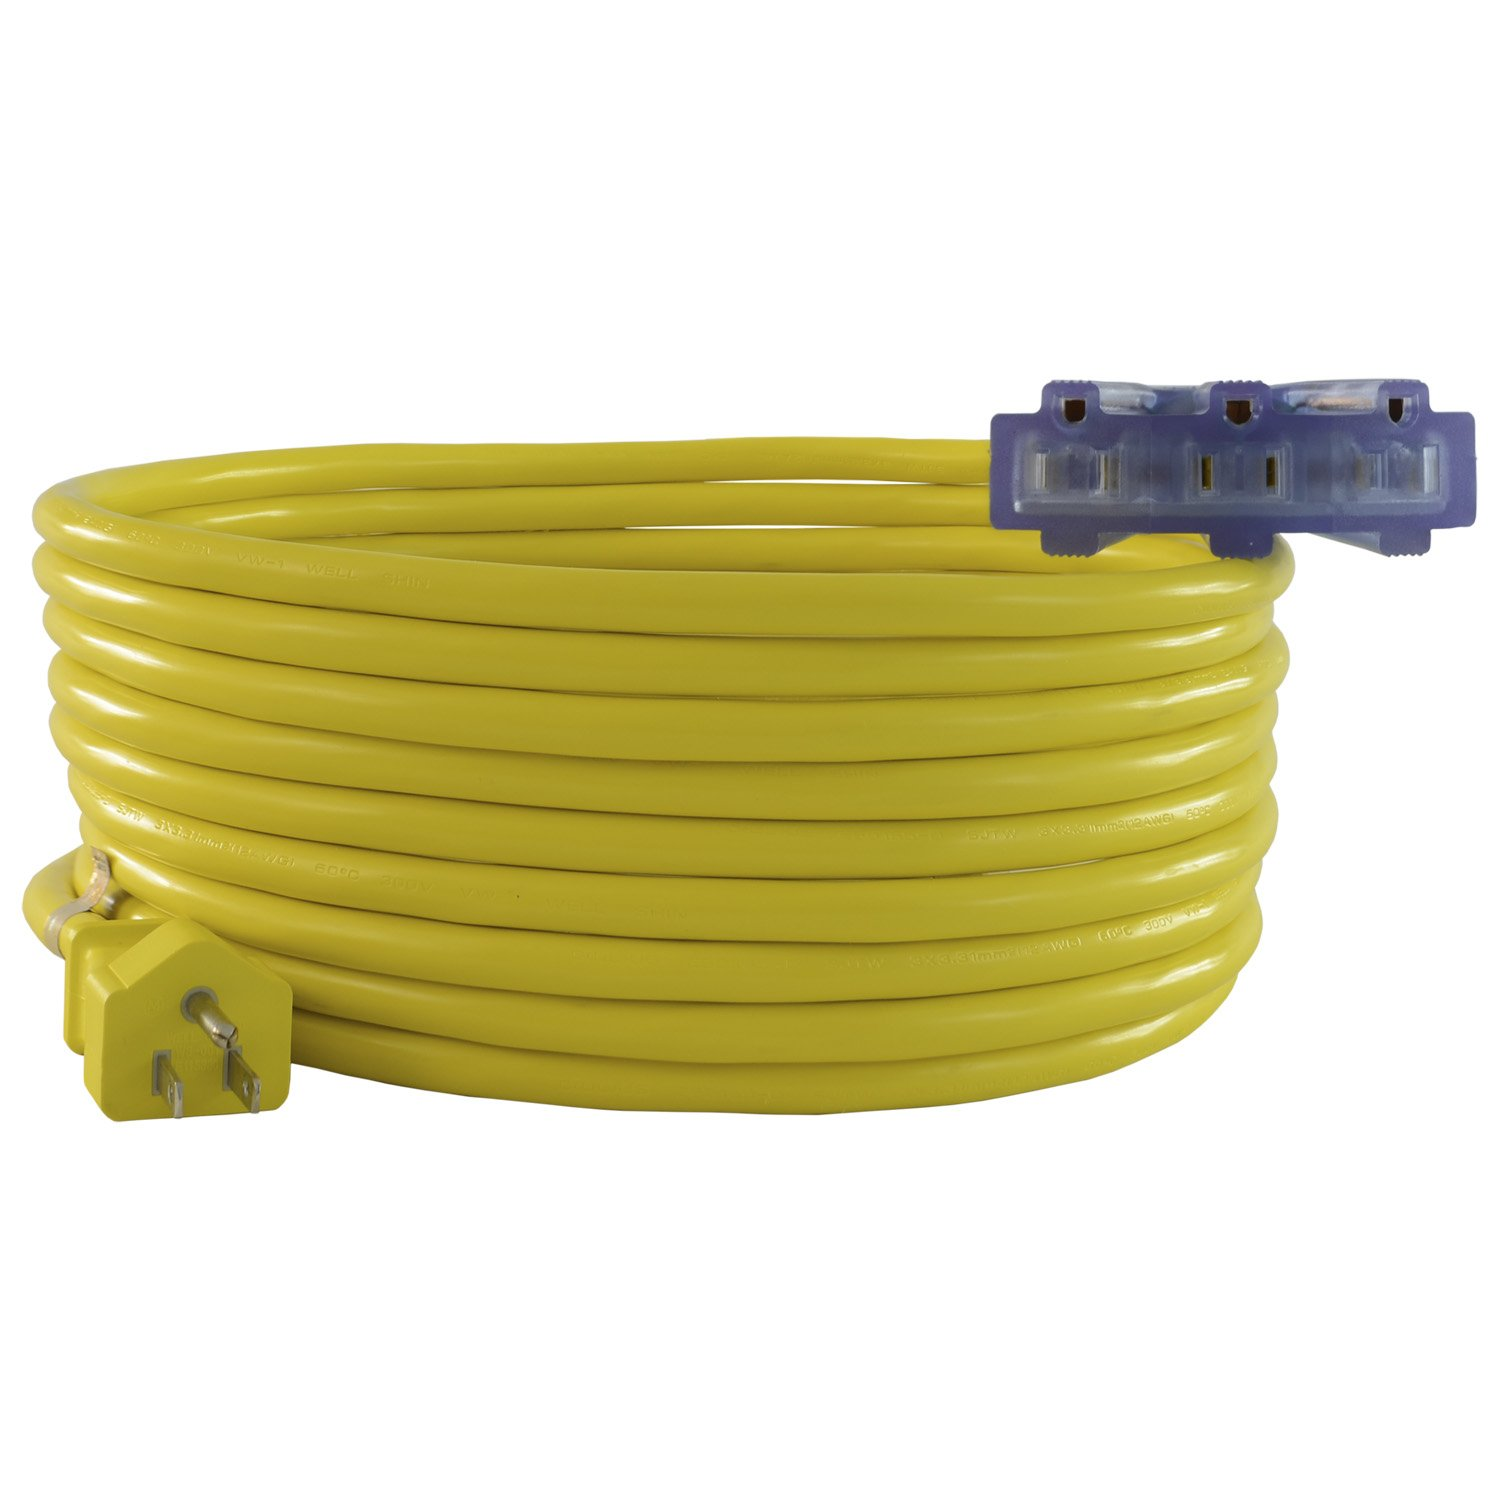 Conntek 20411-050 50-Feet 12/3 U.S 3-Prong Plug to Tri-outlets with Light indicator